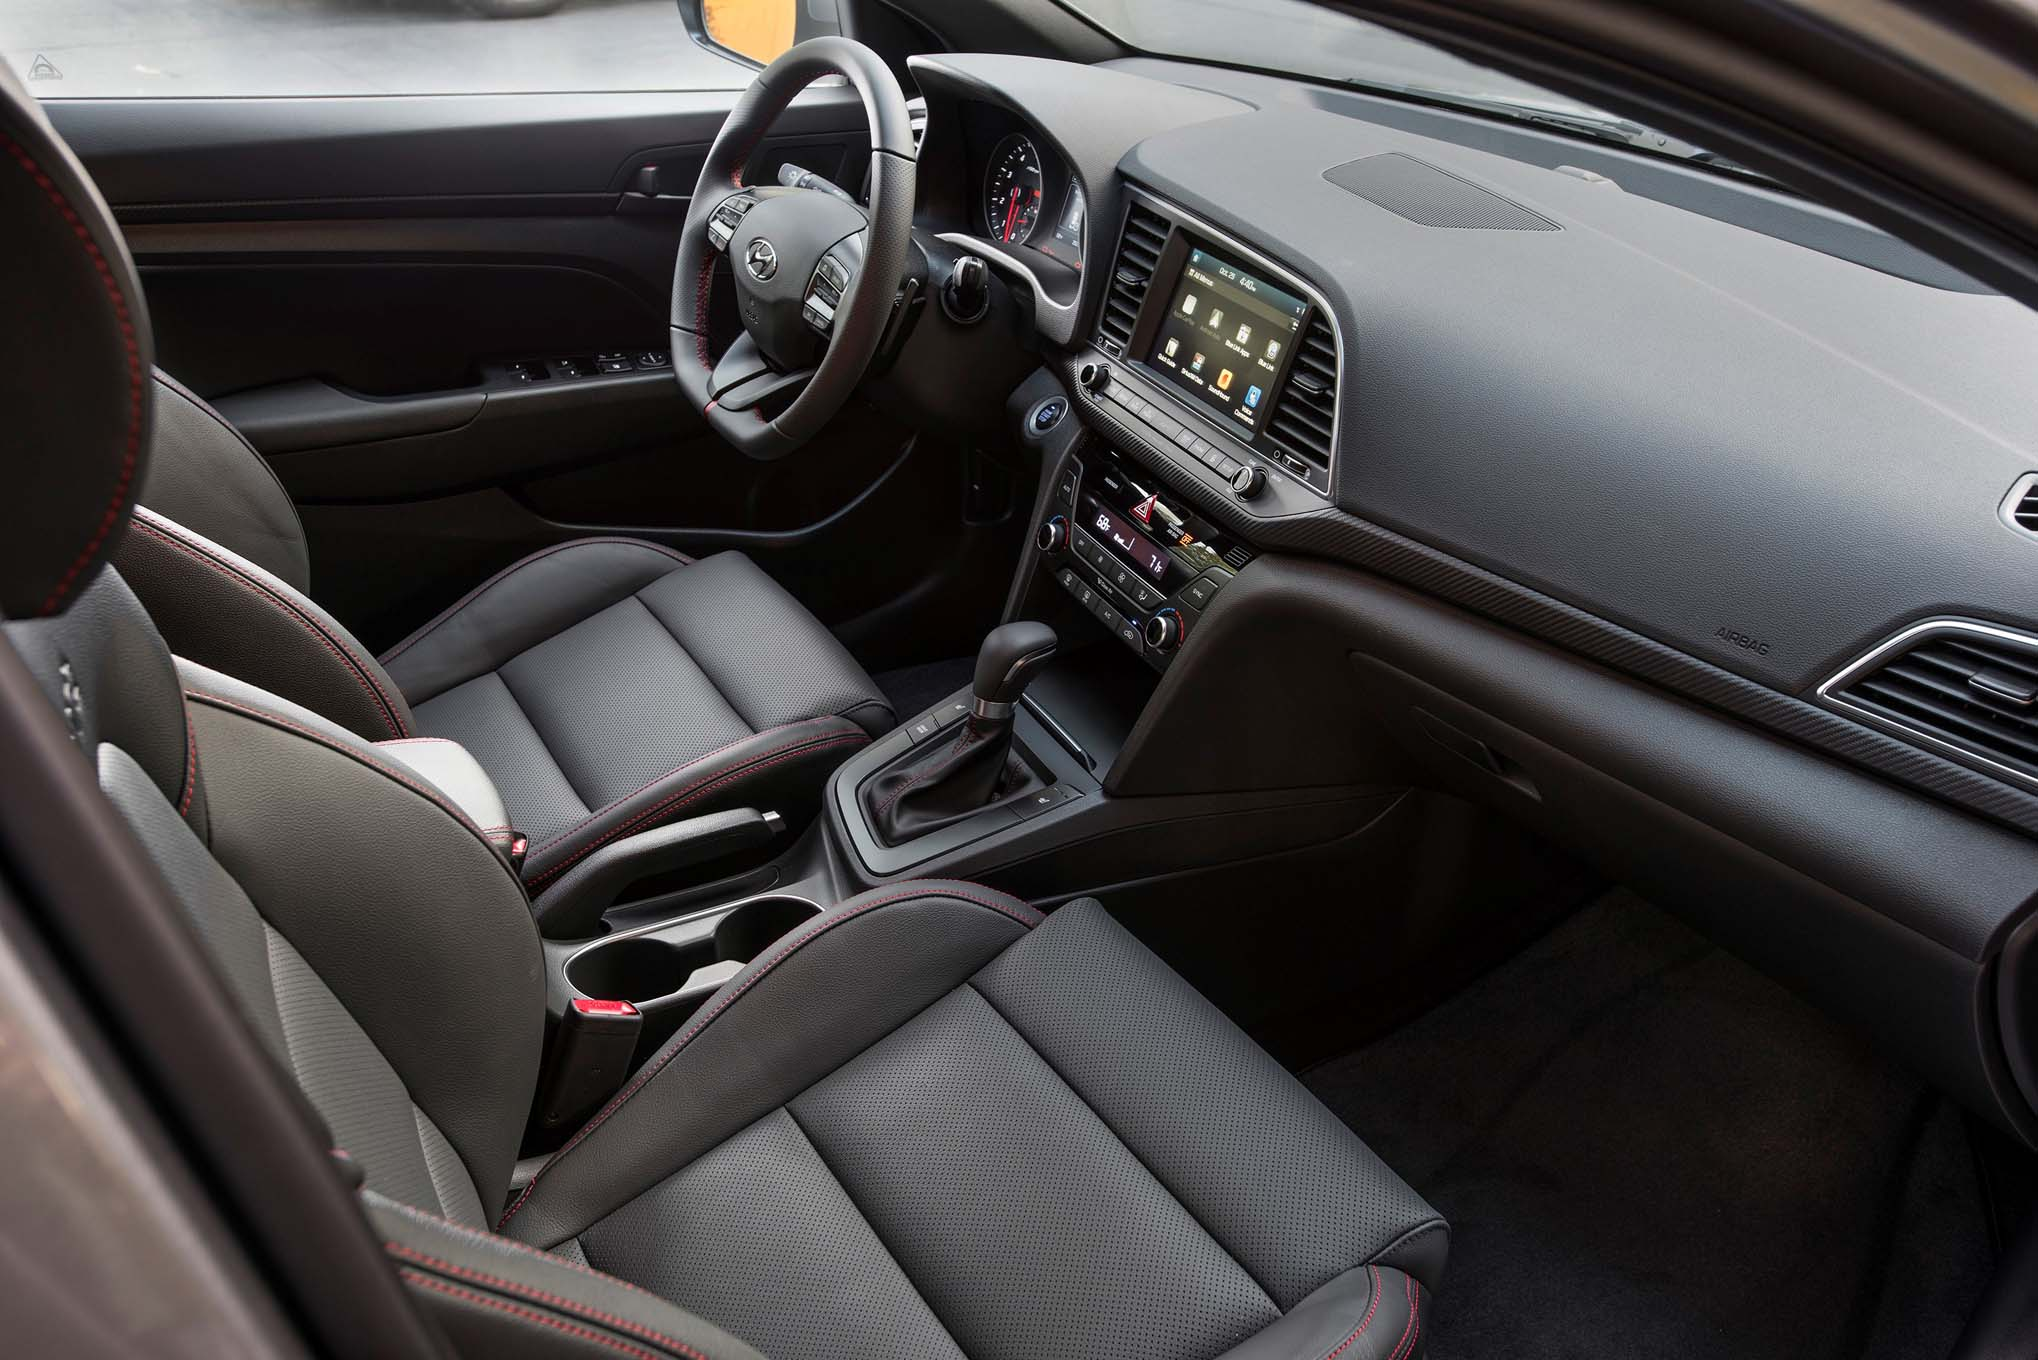 Hyundai Releases Photo Of New Elantra Showing Bold Interior Design